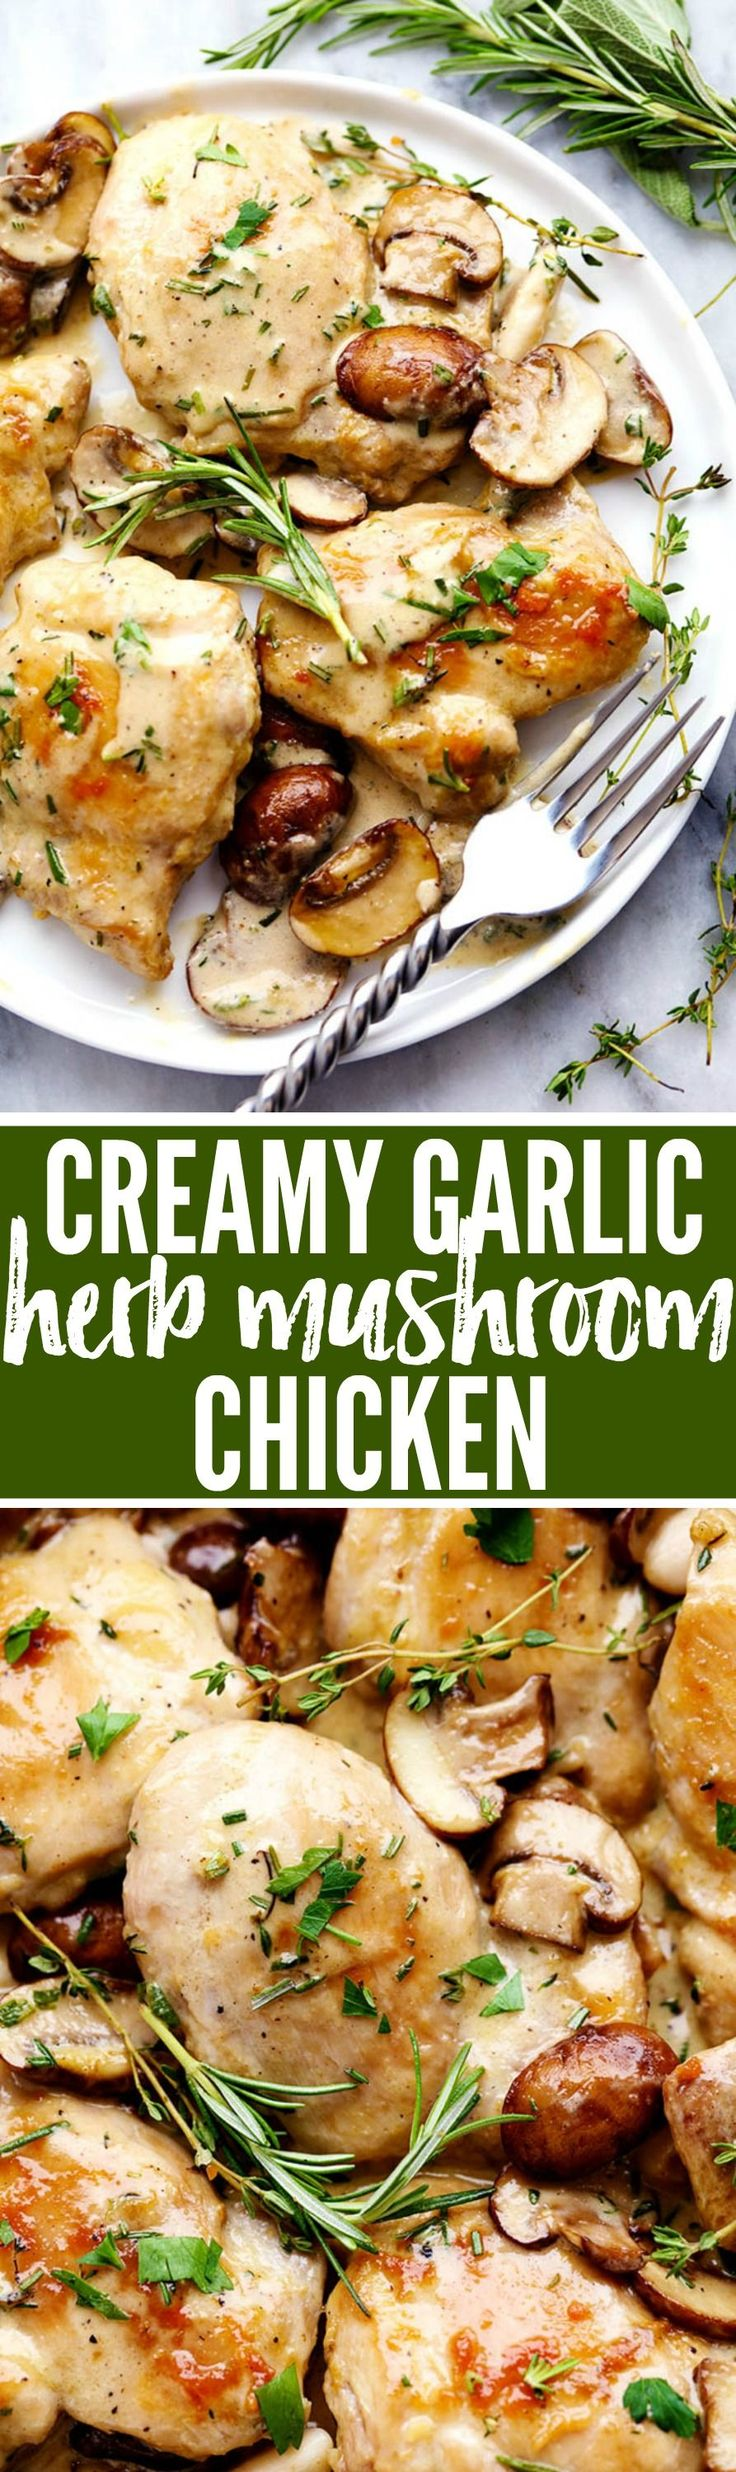 Creamy Garlic Herb Mushroom Chicken is a quick and easy 30 minute meal with amazing restaurant quality taste! The creamy garlic and fresh herb mushroom sauce over this chicken is insanely delicious!